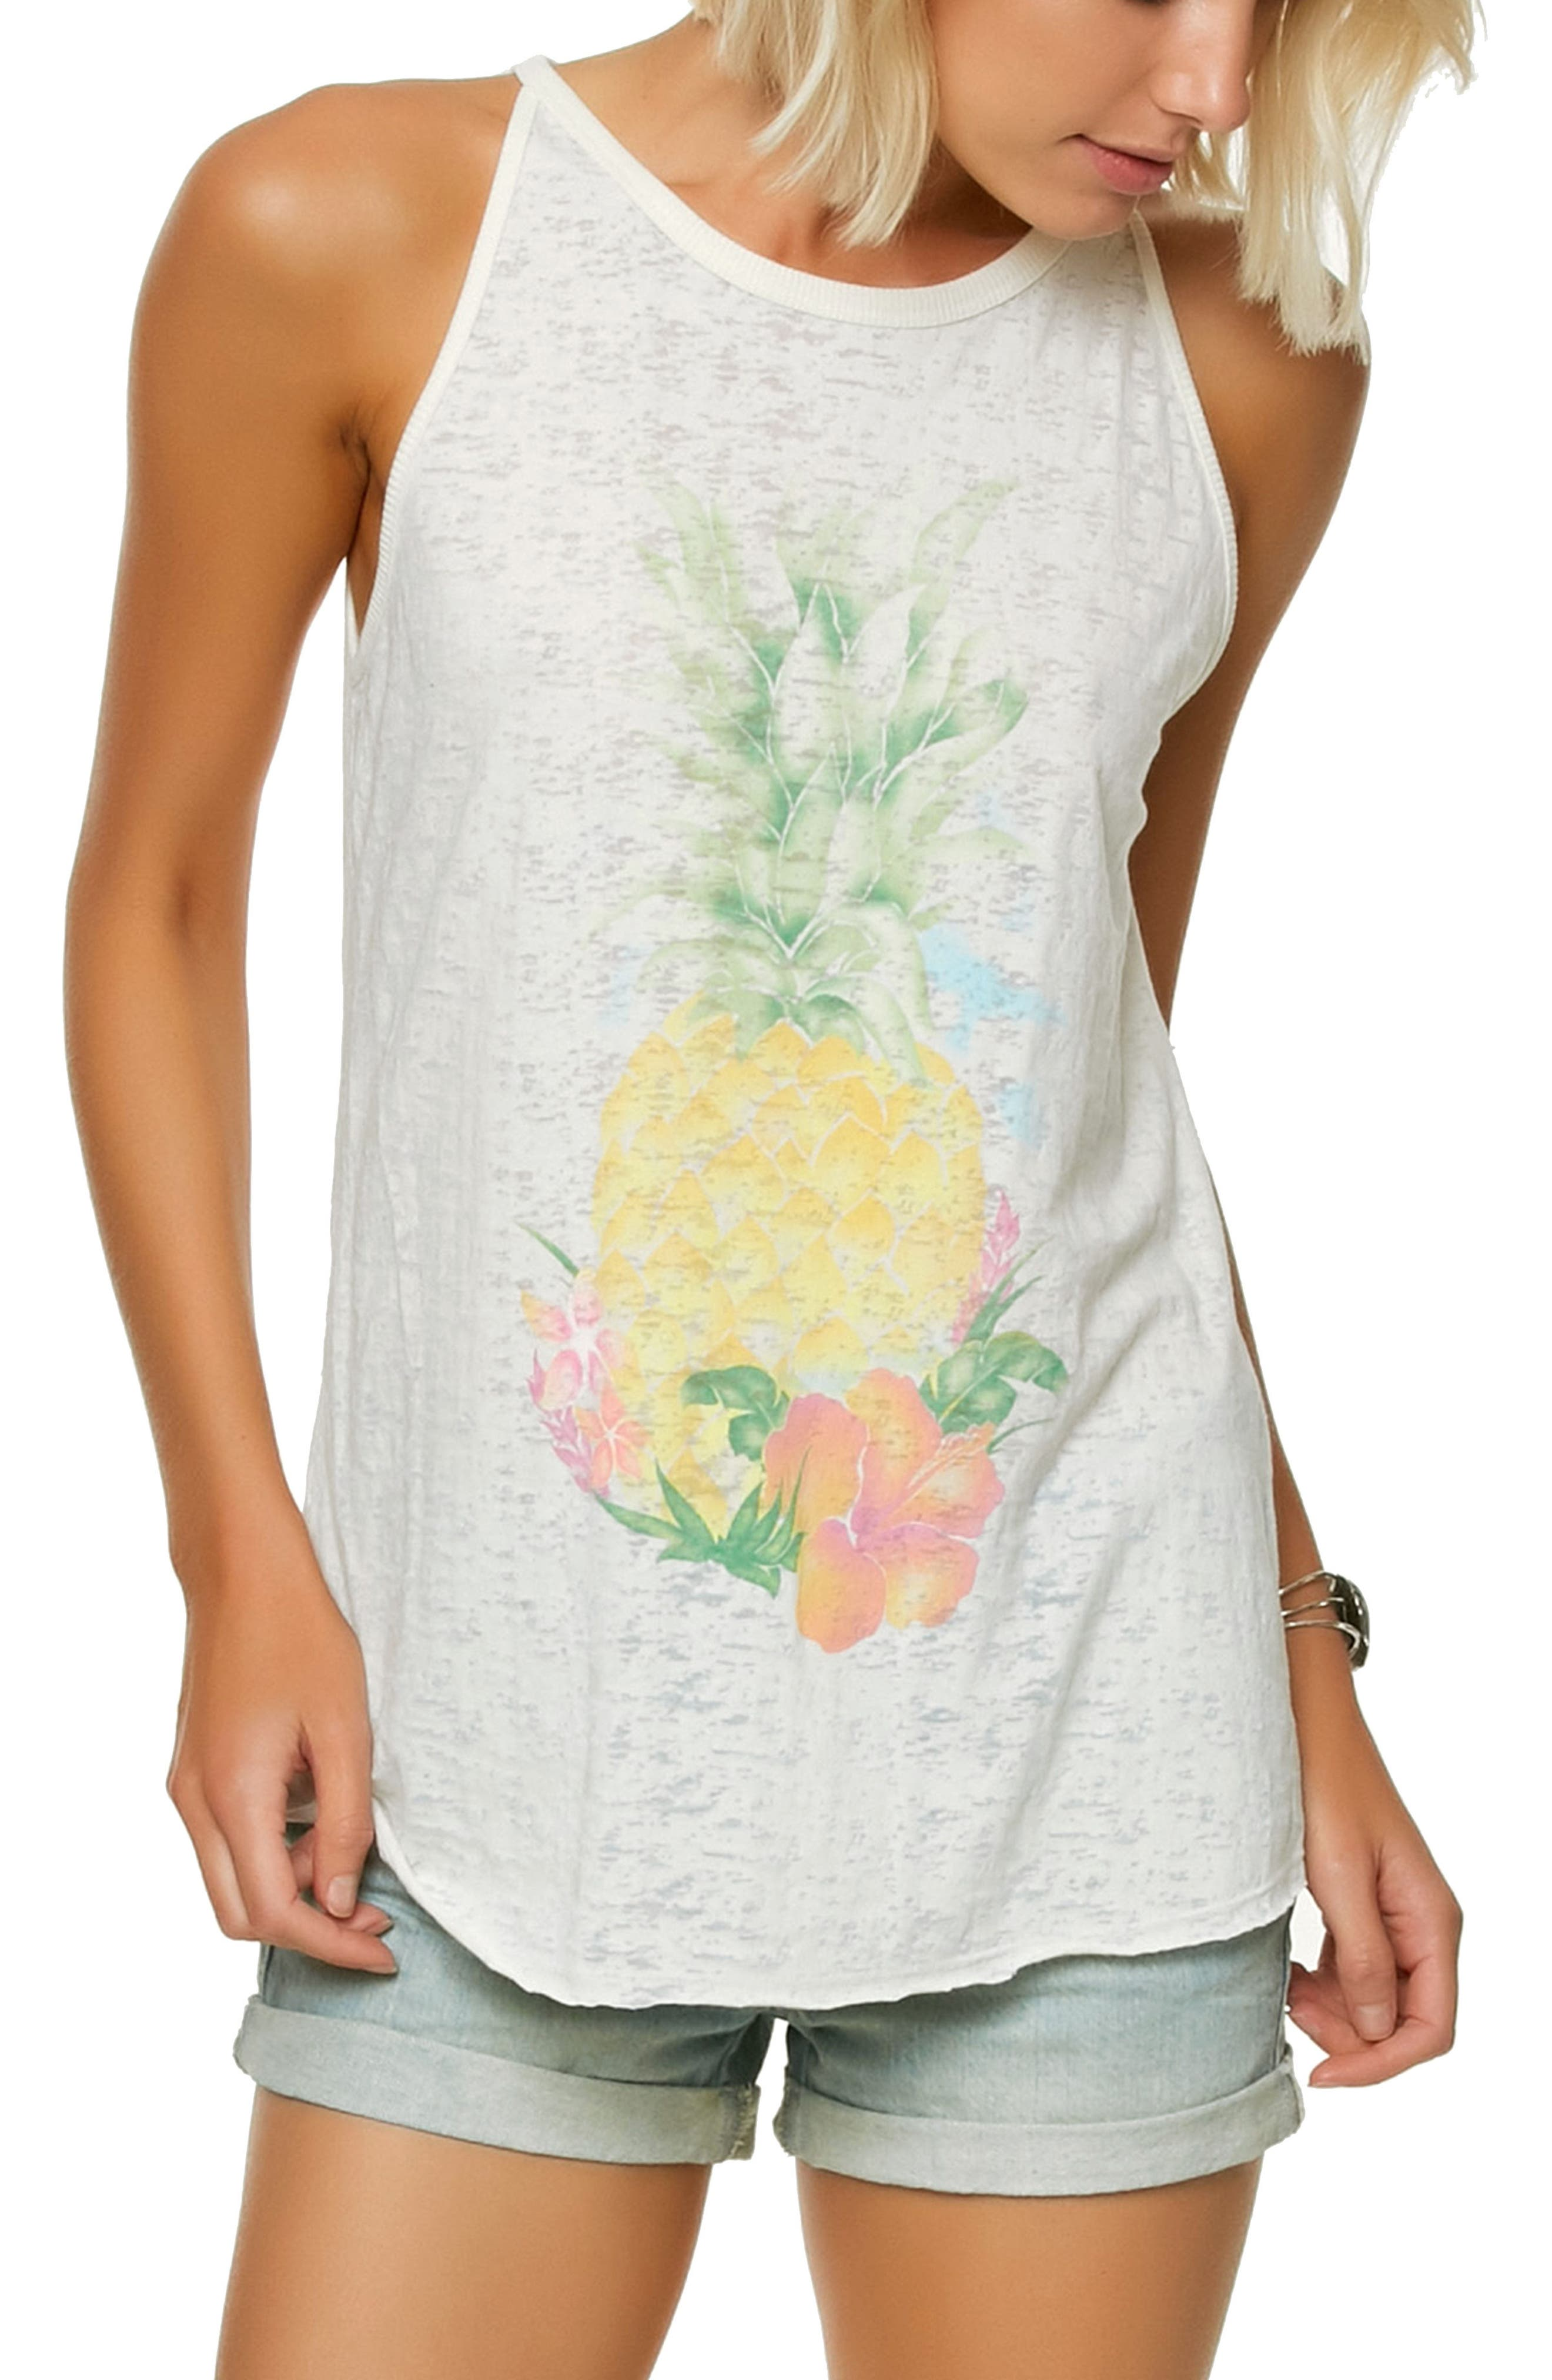 Alternate Image 1 Selected - O'Neill Pineapple Graphic Tank Top